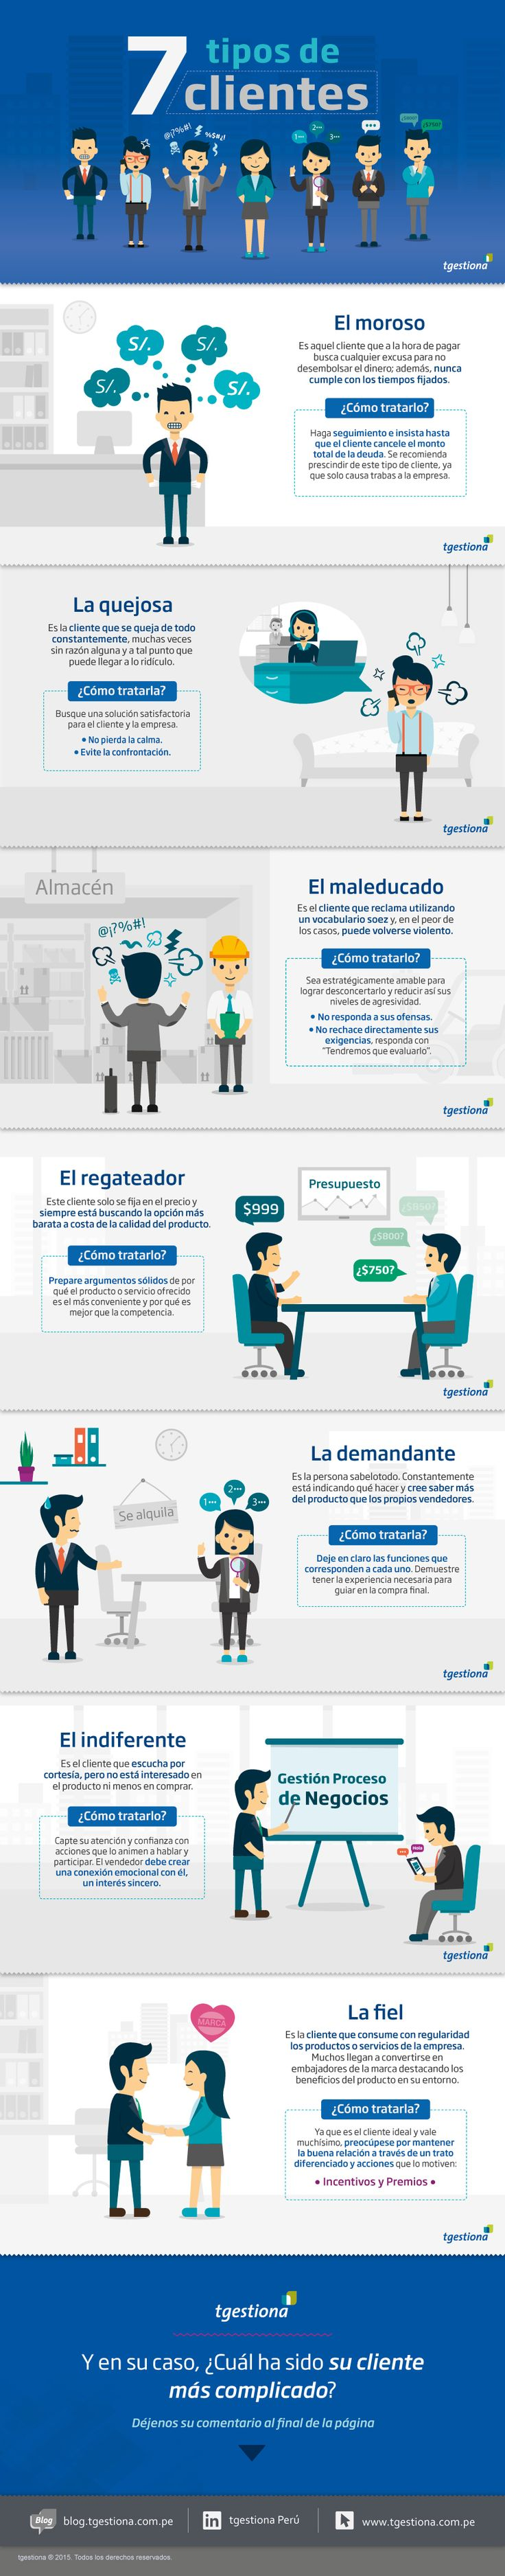 7 tipos de clientes #infografia #infographic #marketing